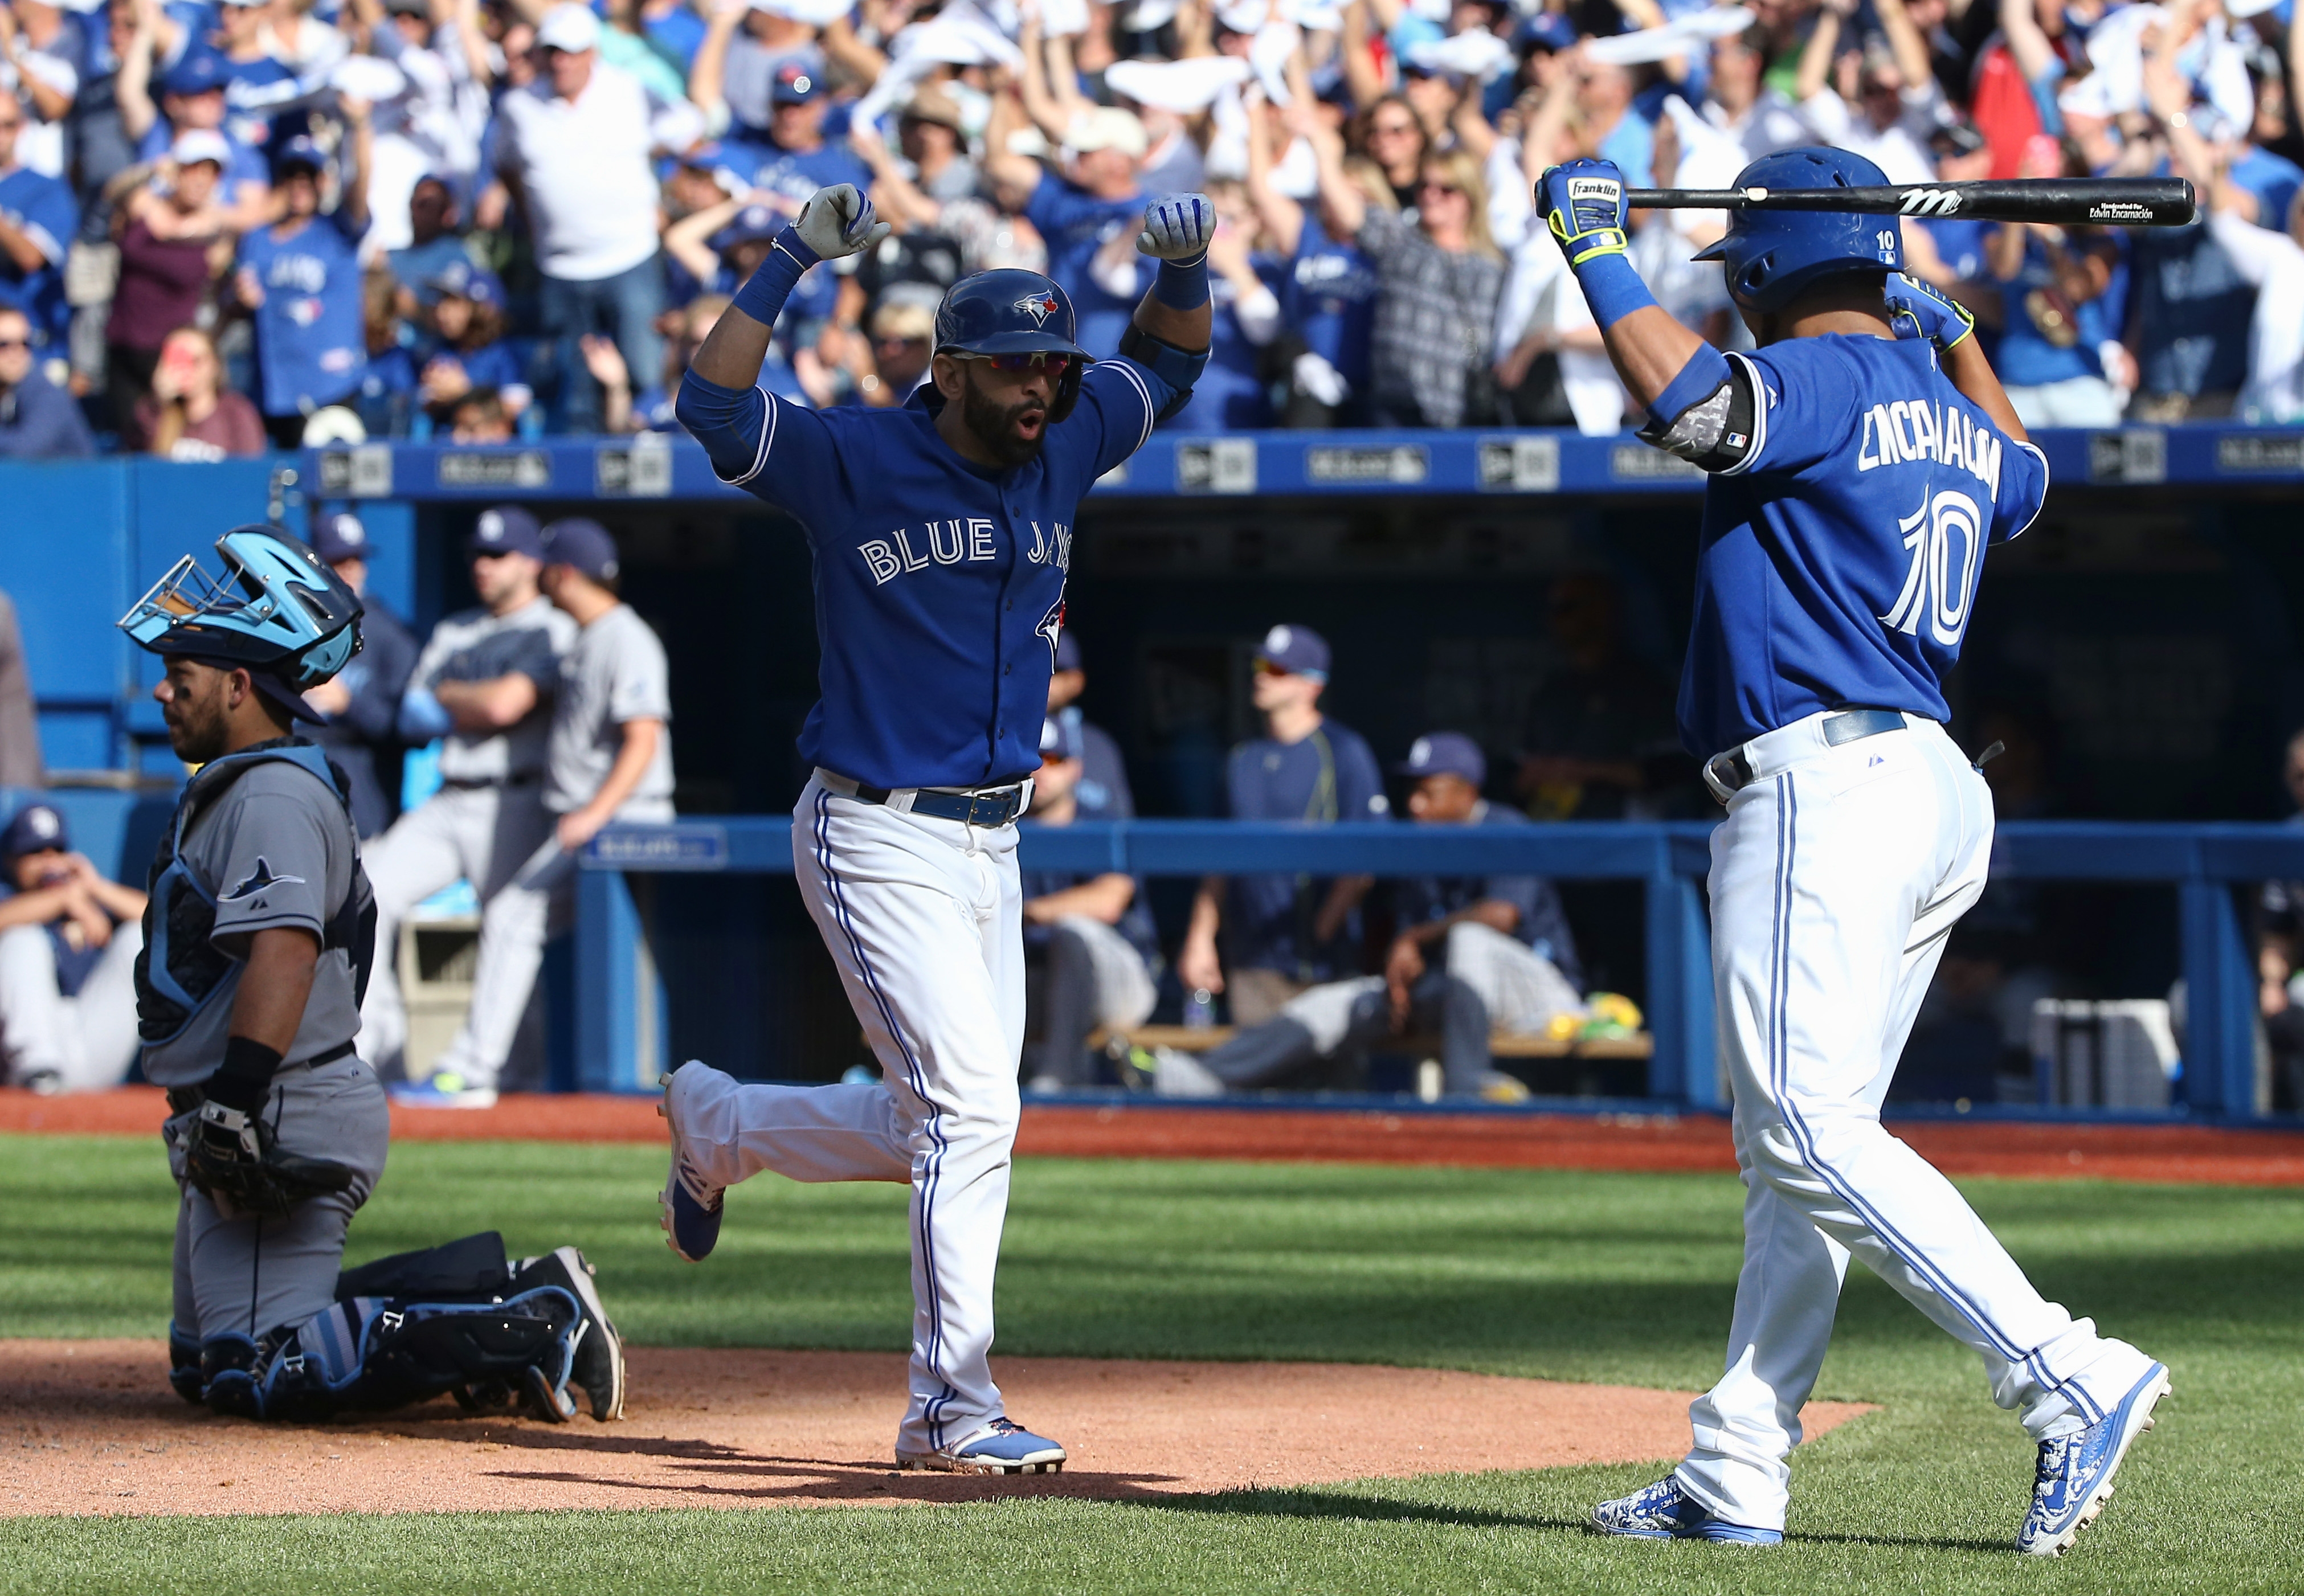 Toronto's Jose Bautista, center, is congratulated by Edwin Encarnacion after hitting a home run against the Tampa Bay Rays on Saturday. The Jays won, 10-8.